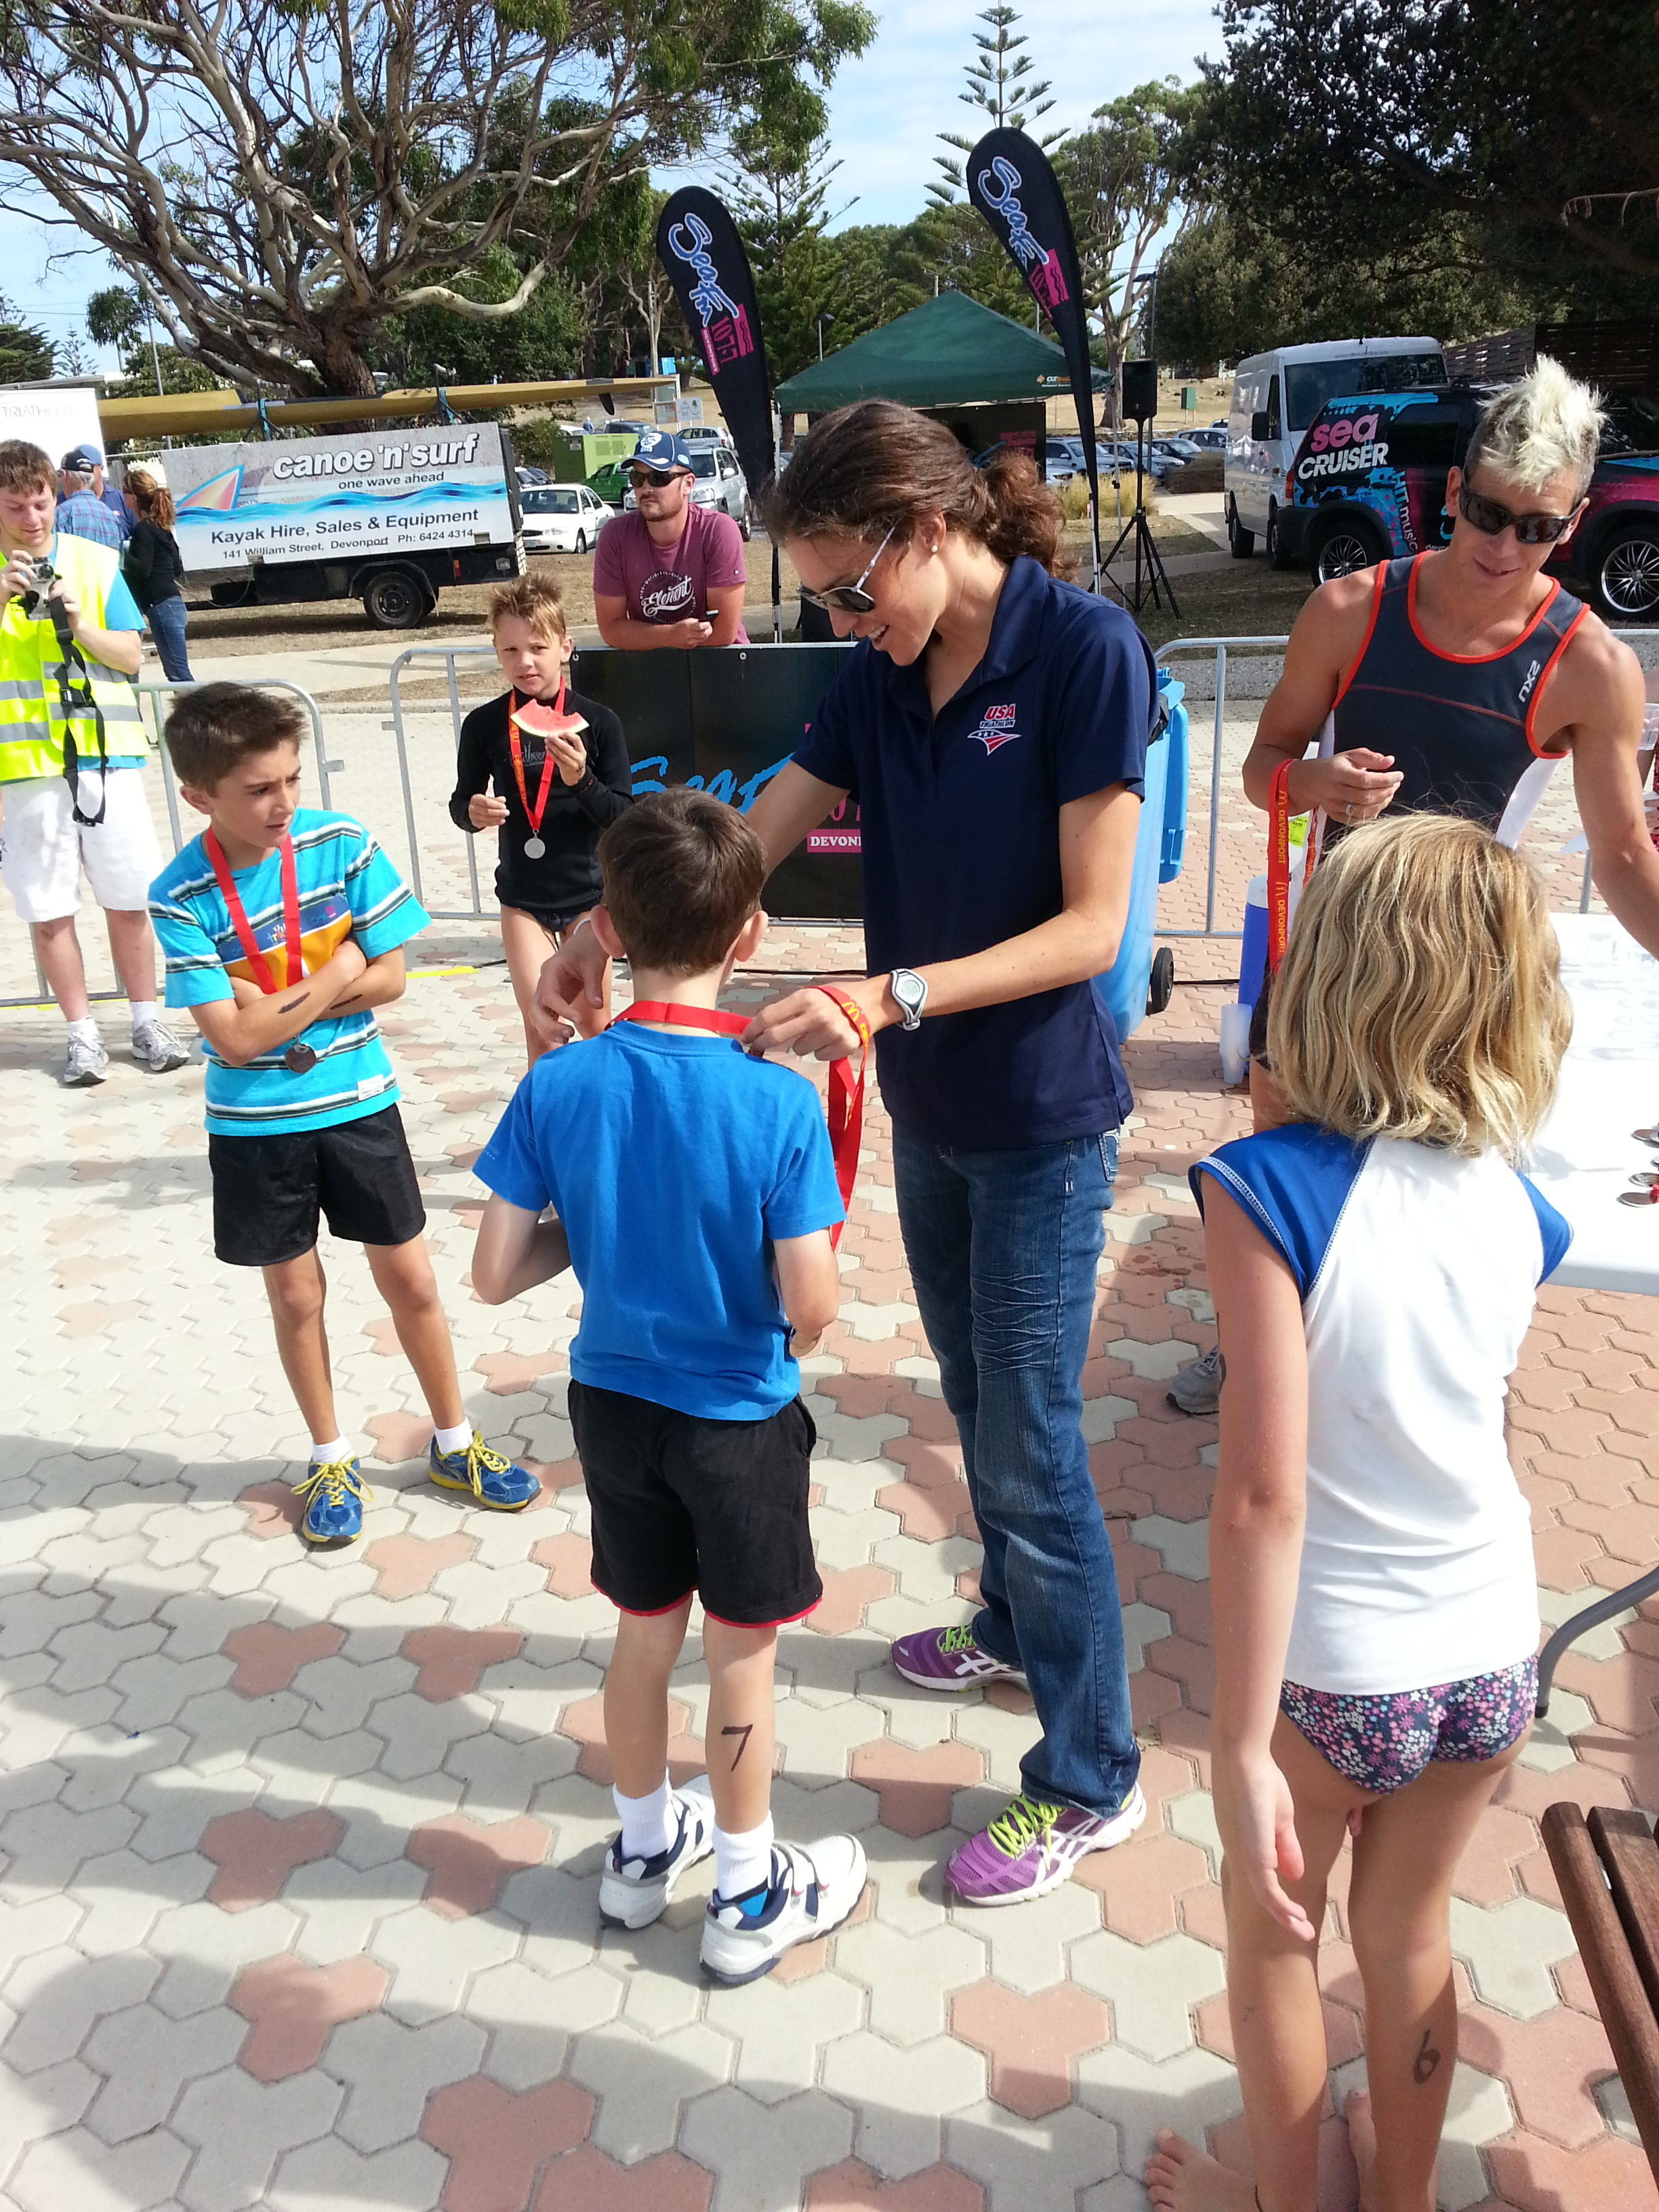 Gwen handing out medals at a triathlon